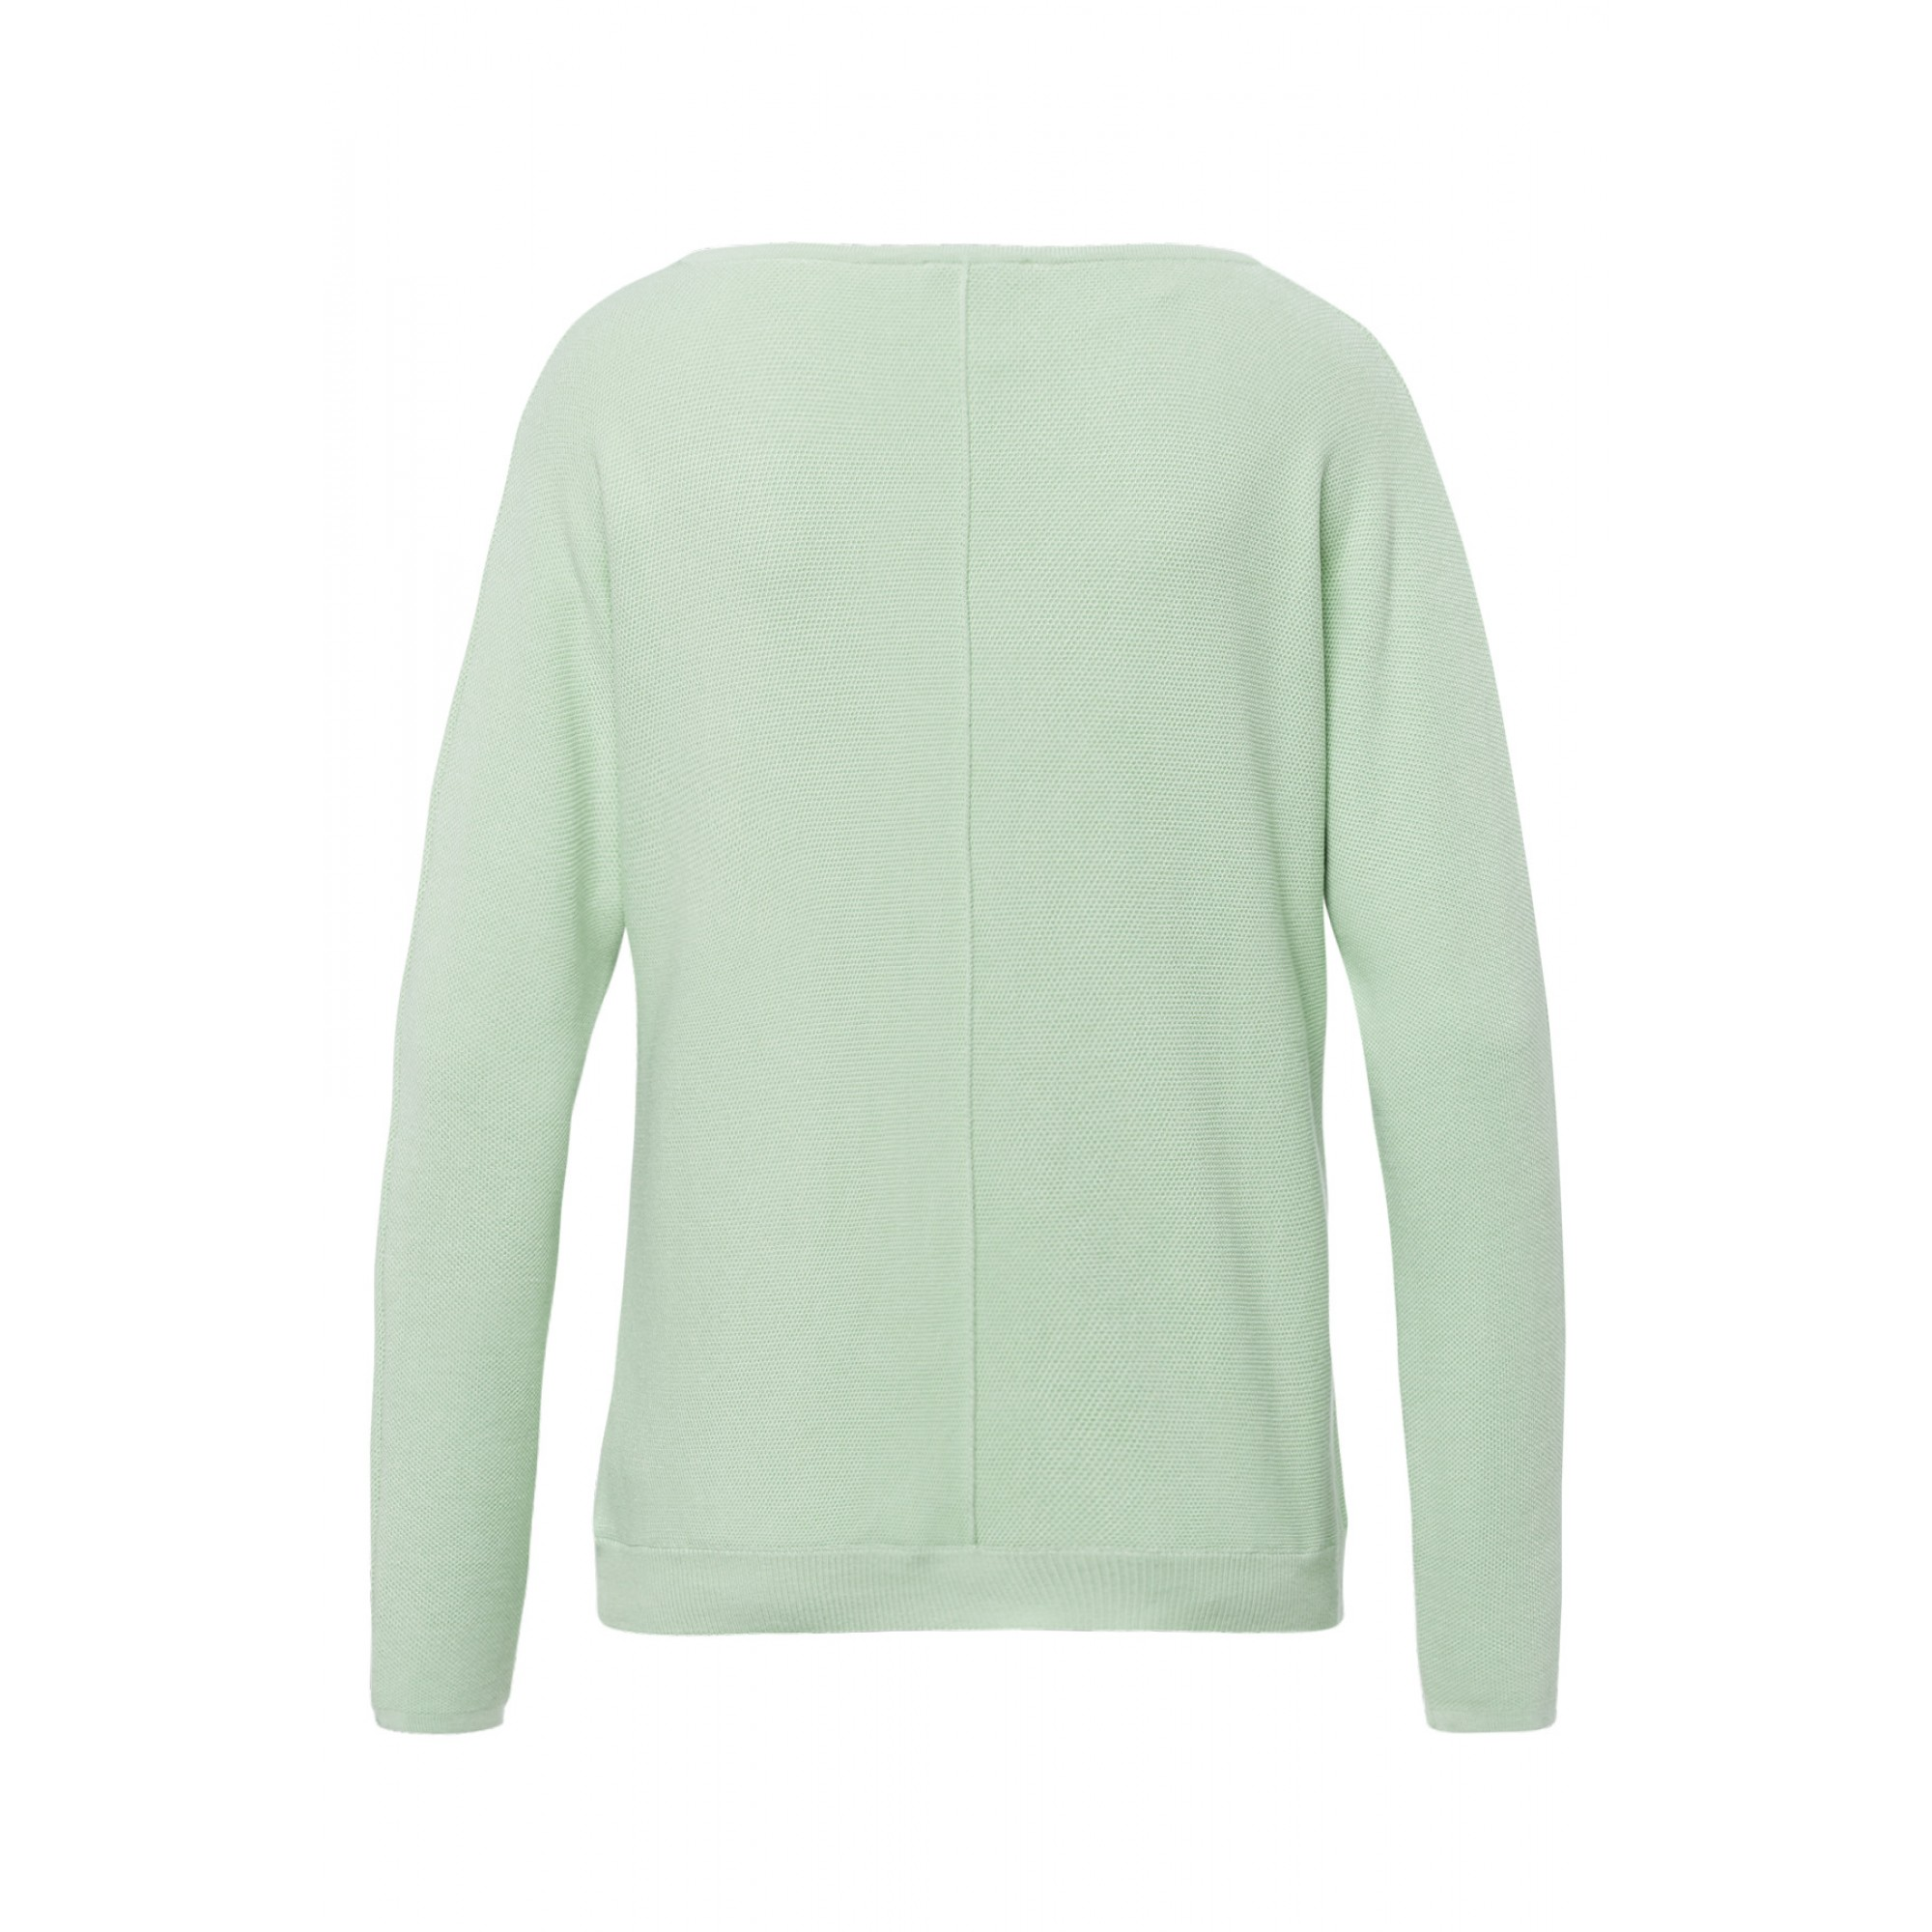 Pullover, soft green 01011007-0615 2